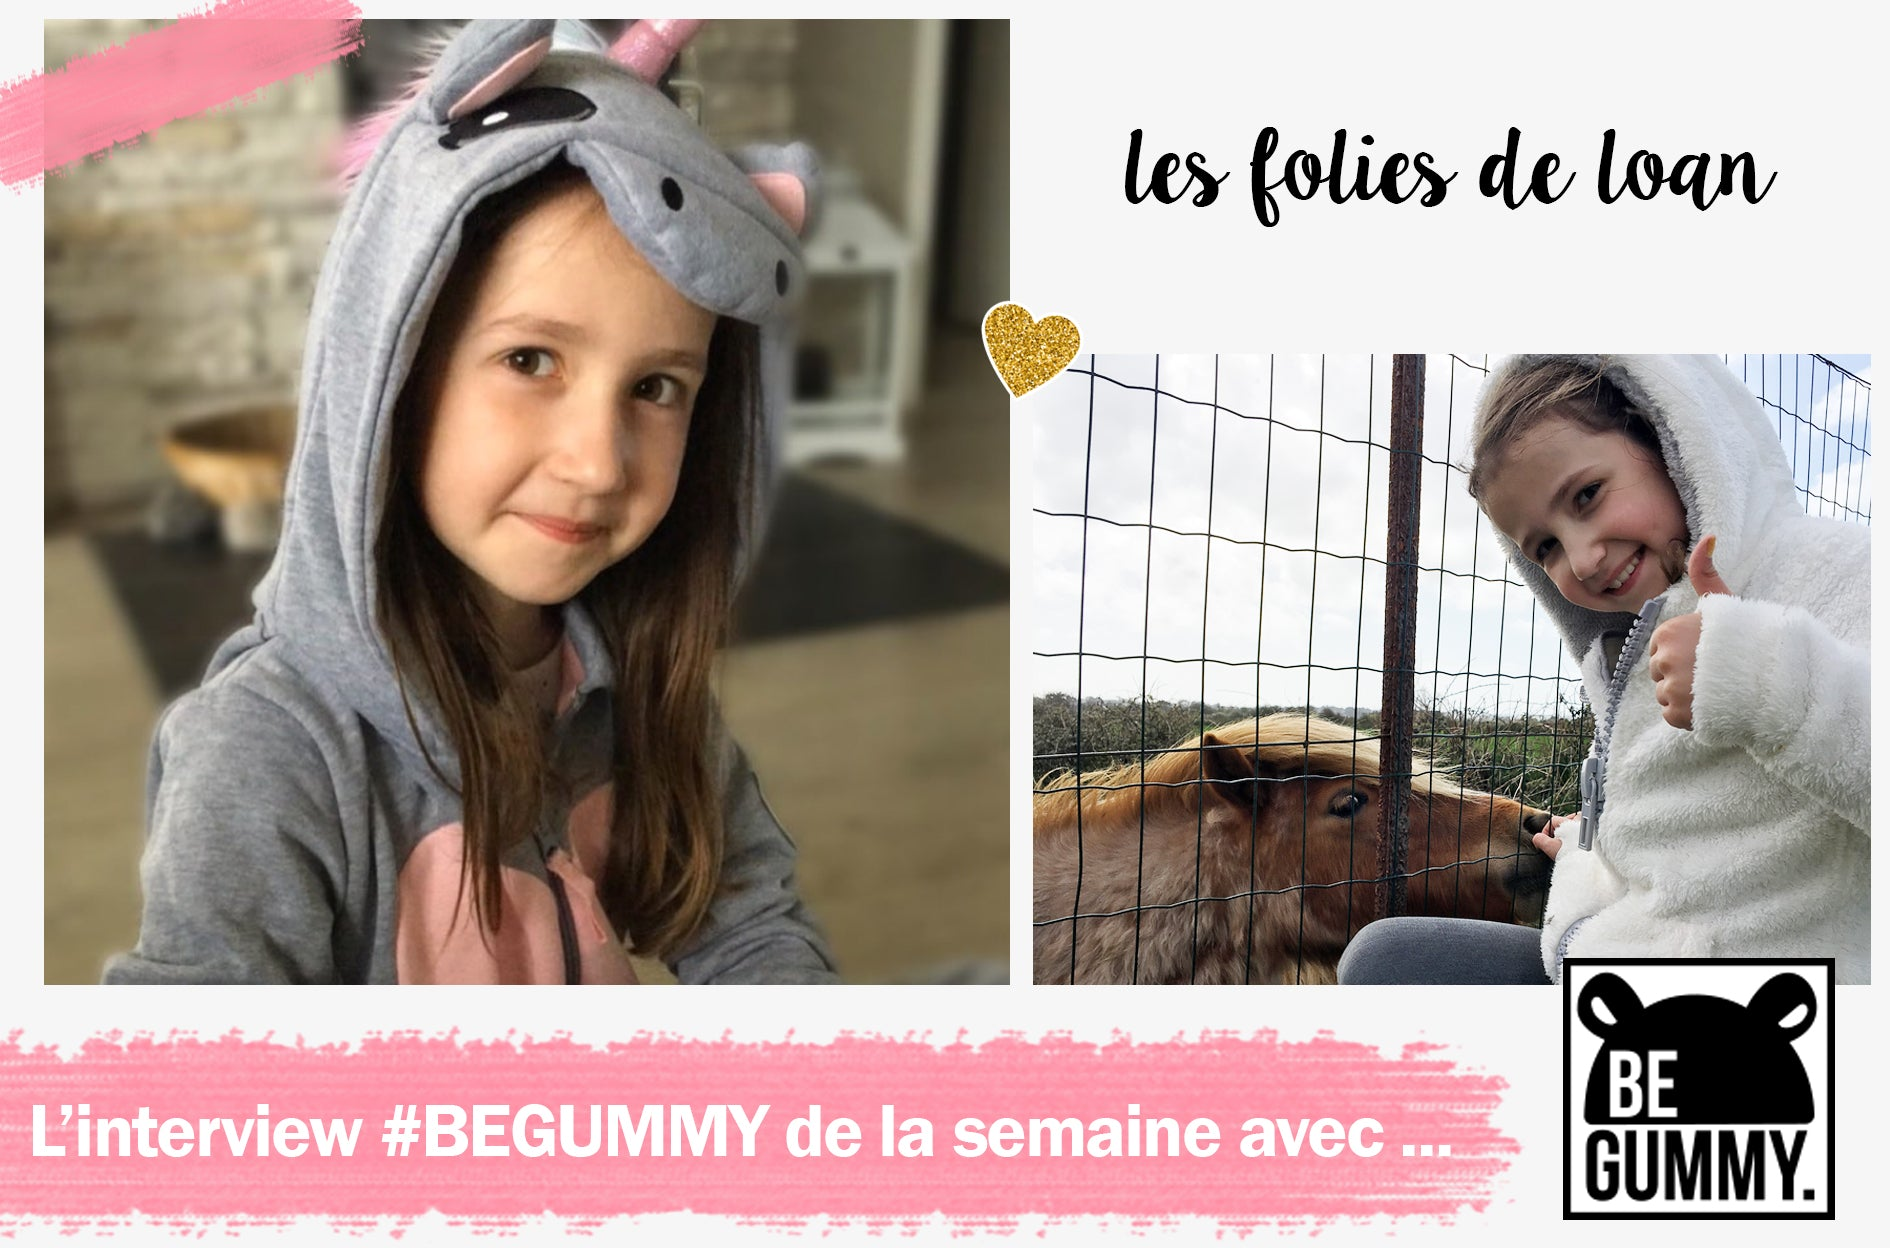 L'interview #BEGUMMY avec... Les folies de Loan